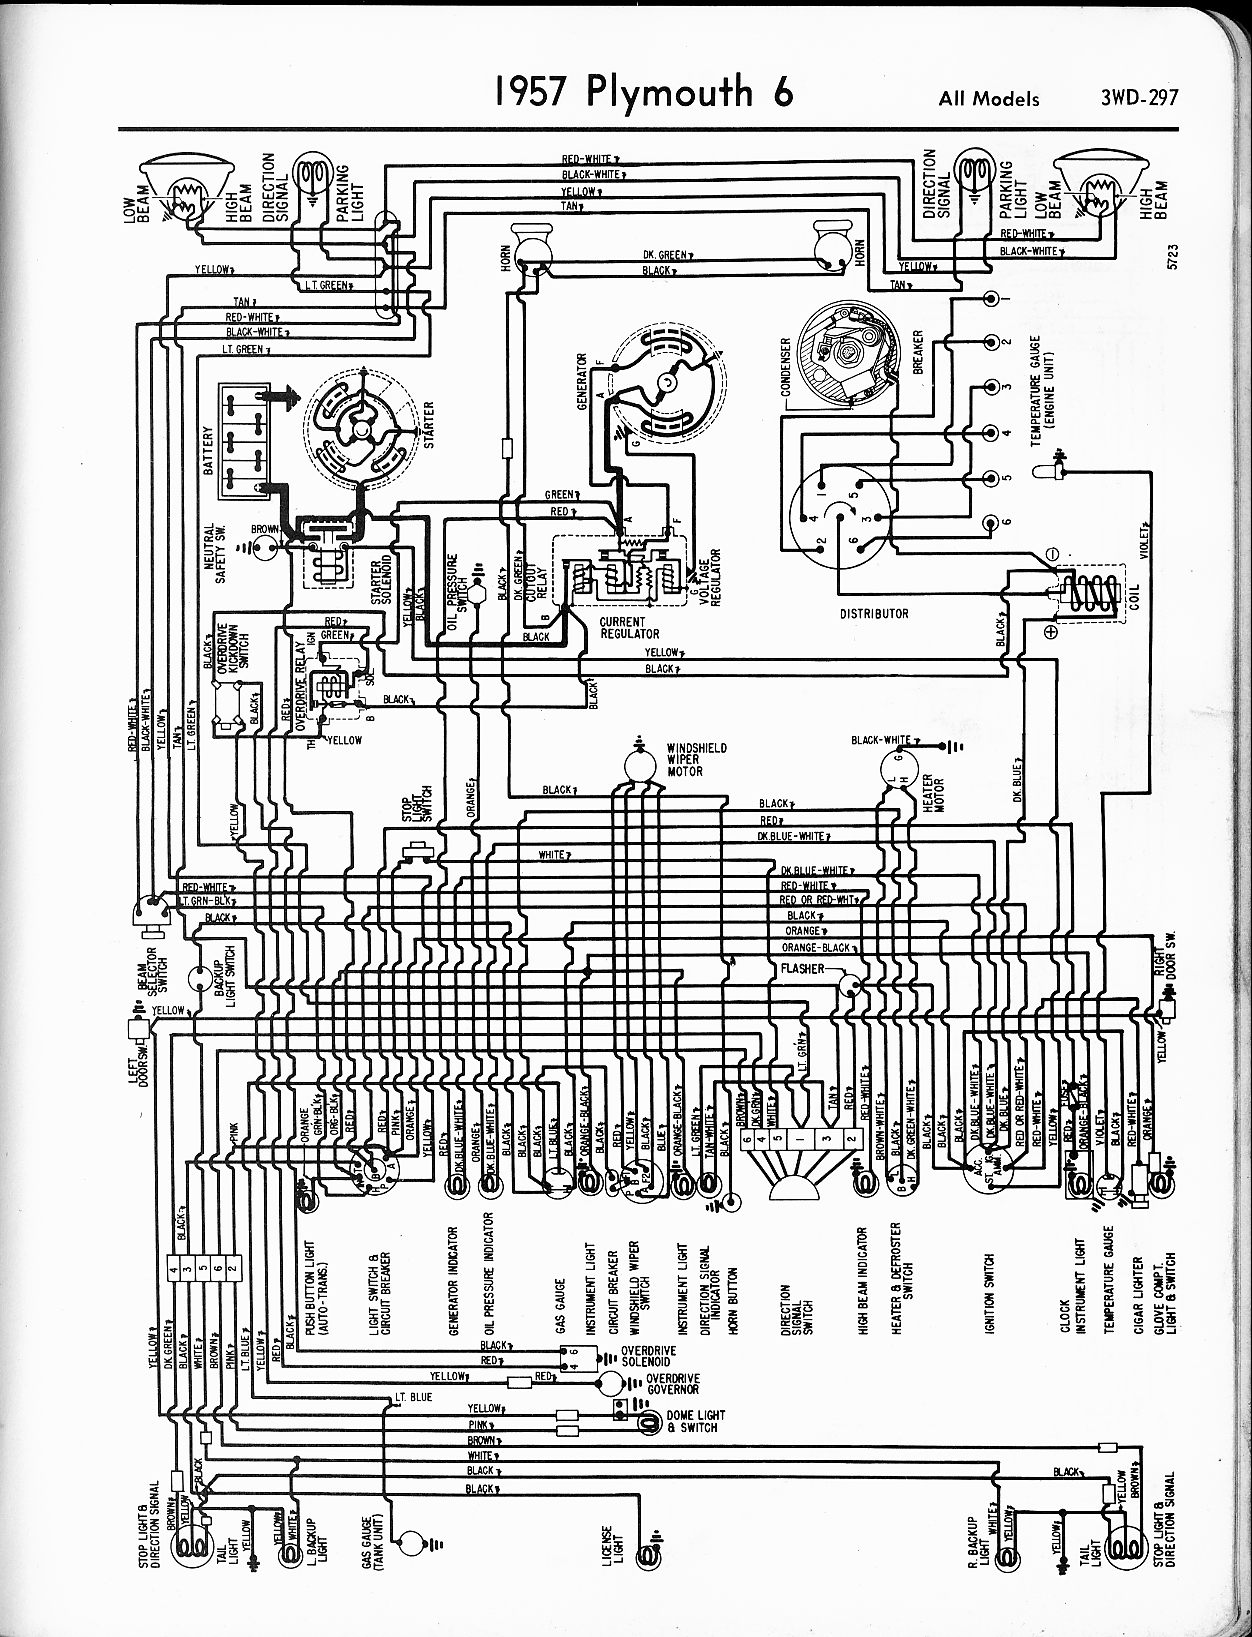 1967 Barracuda Wiring Diagrams Reinvent Your Diagram Plymouth Valiant Ac 1965 Ply Great Design Of U2022 Rh Homewerk Co 1968